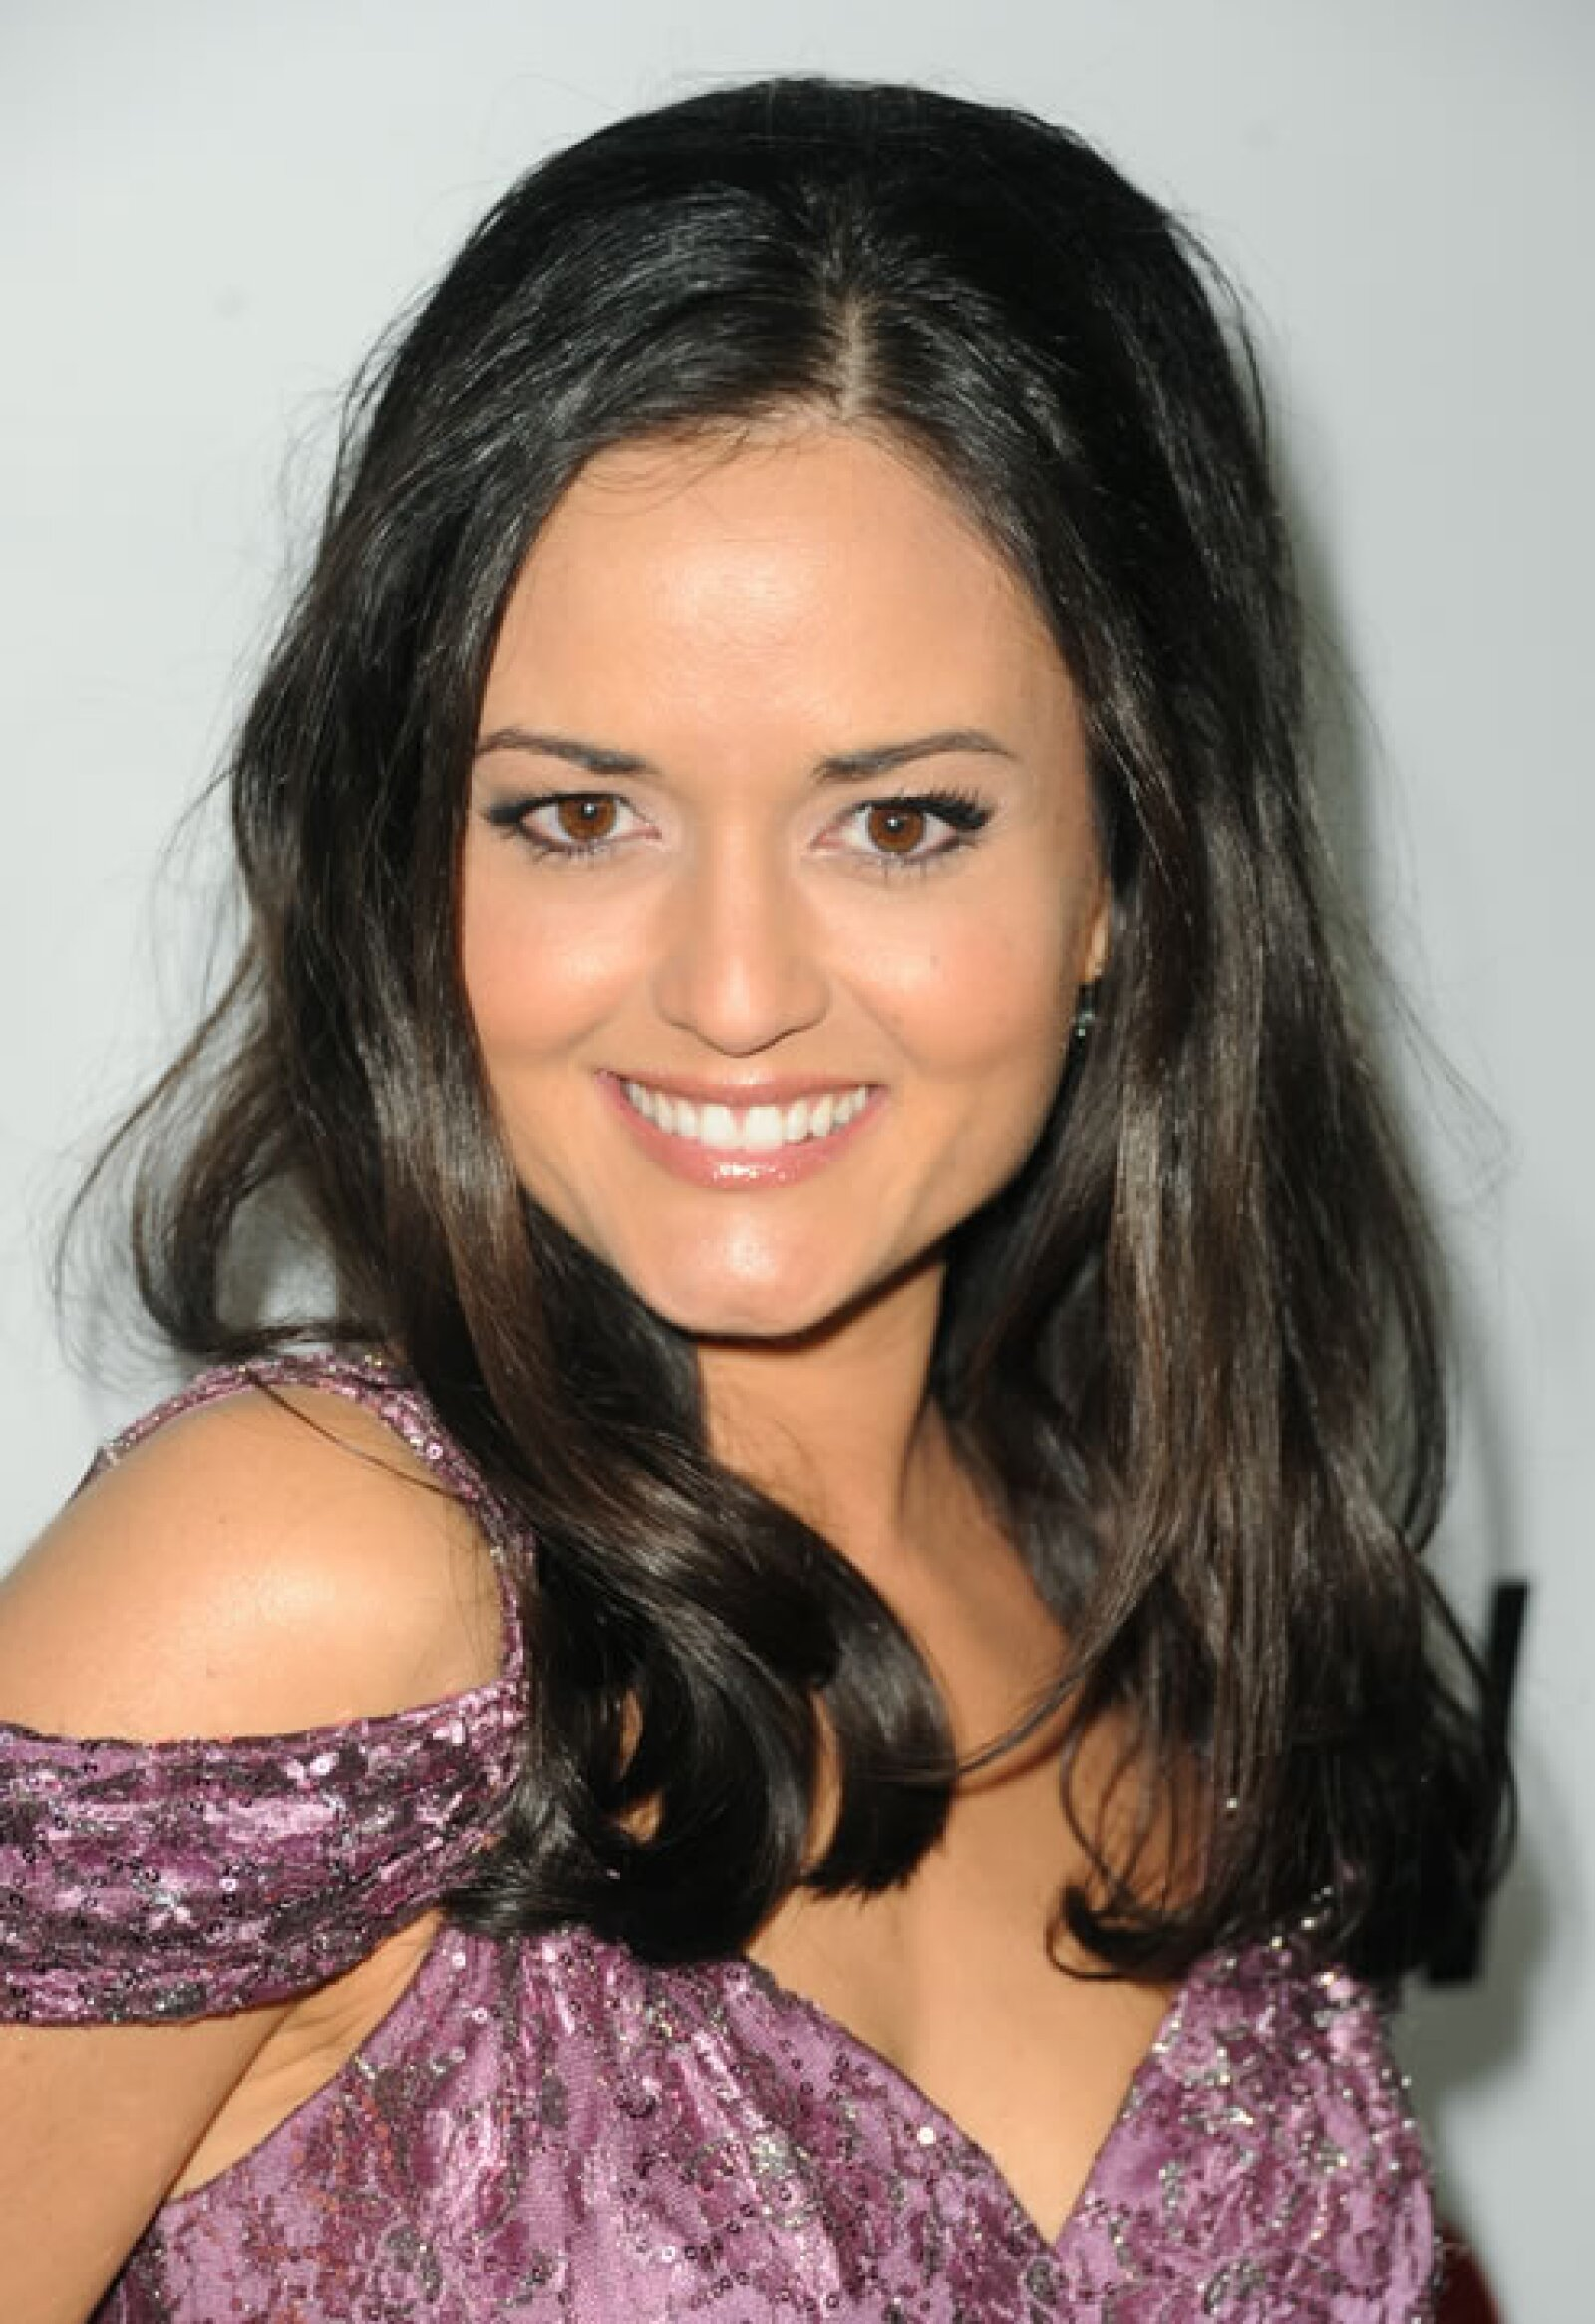 Quien diera vida a Winnie Cooper hoy es una reconocida abogada y escritora de dos best sellers; `Kiss my Math´y `Math doesnt suck´.